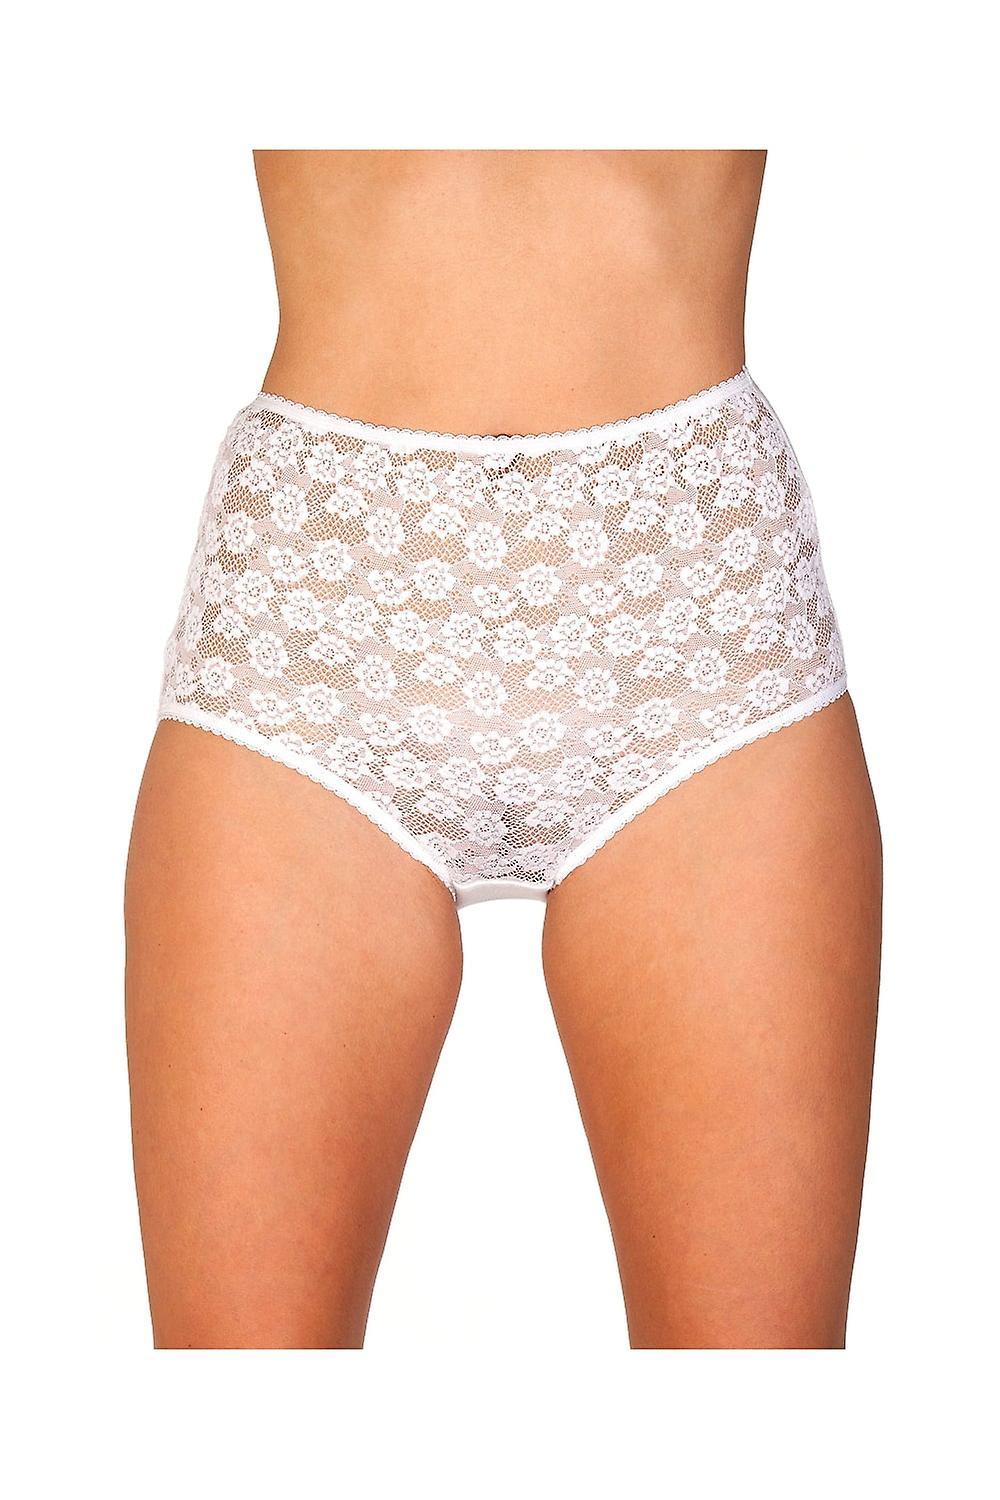 509904500bb2 Camille White Floral Lace Front Womens Maxi Brief Knickers